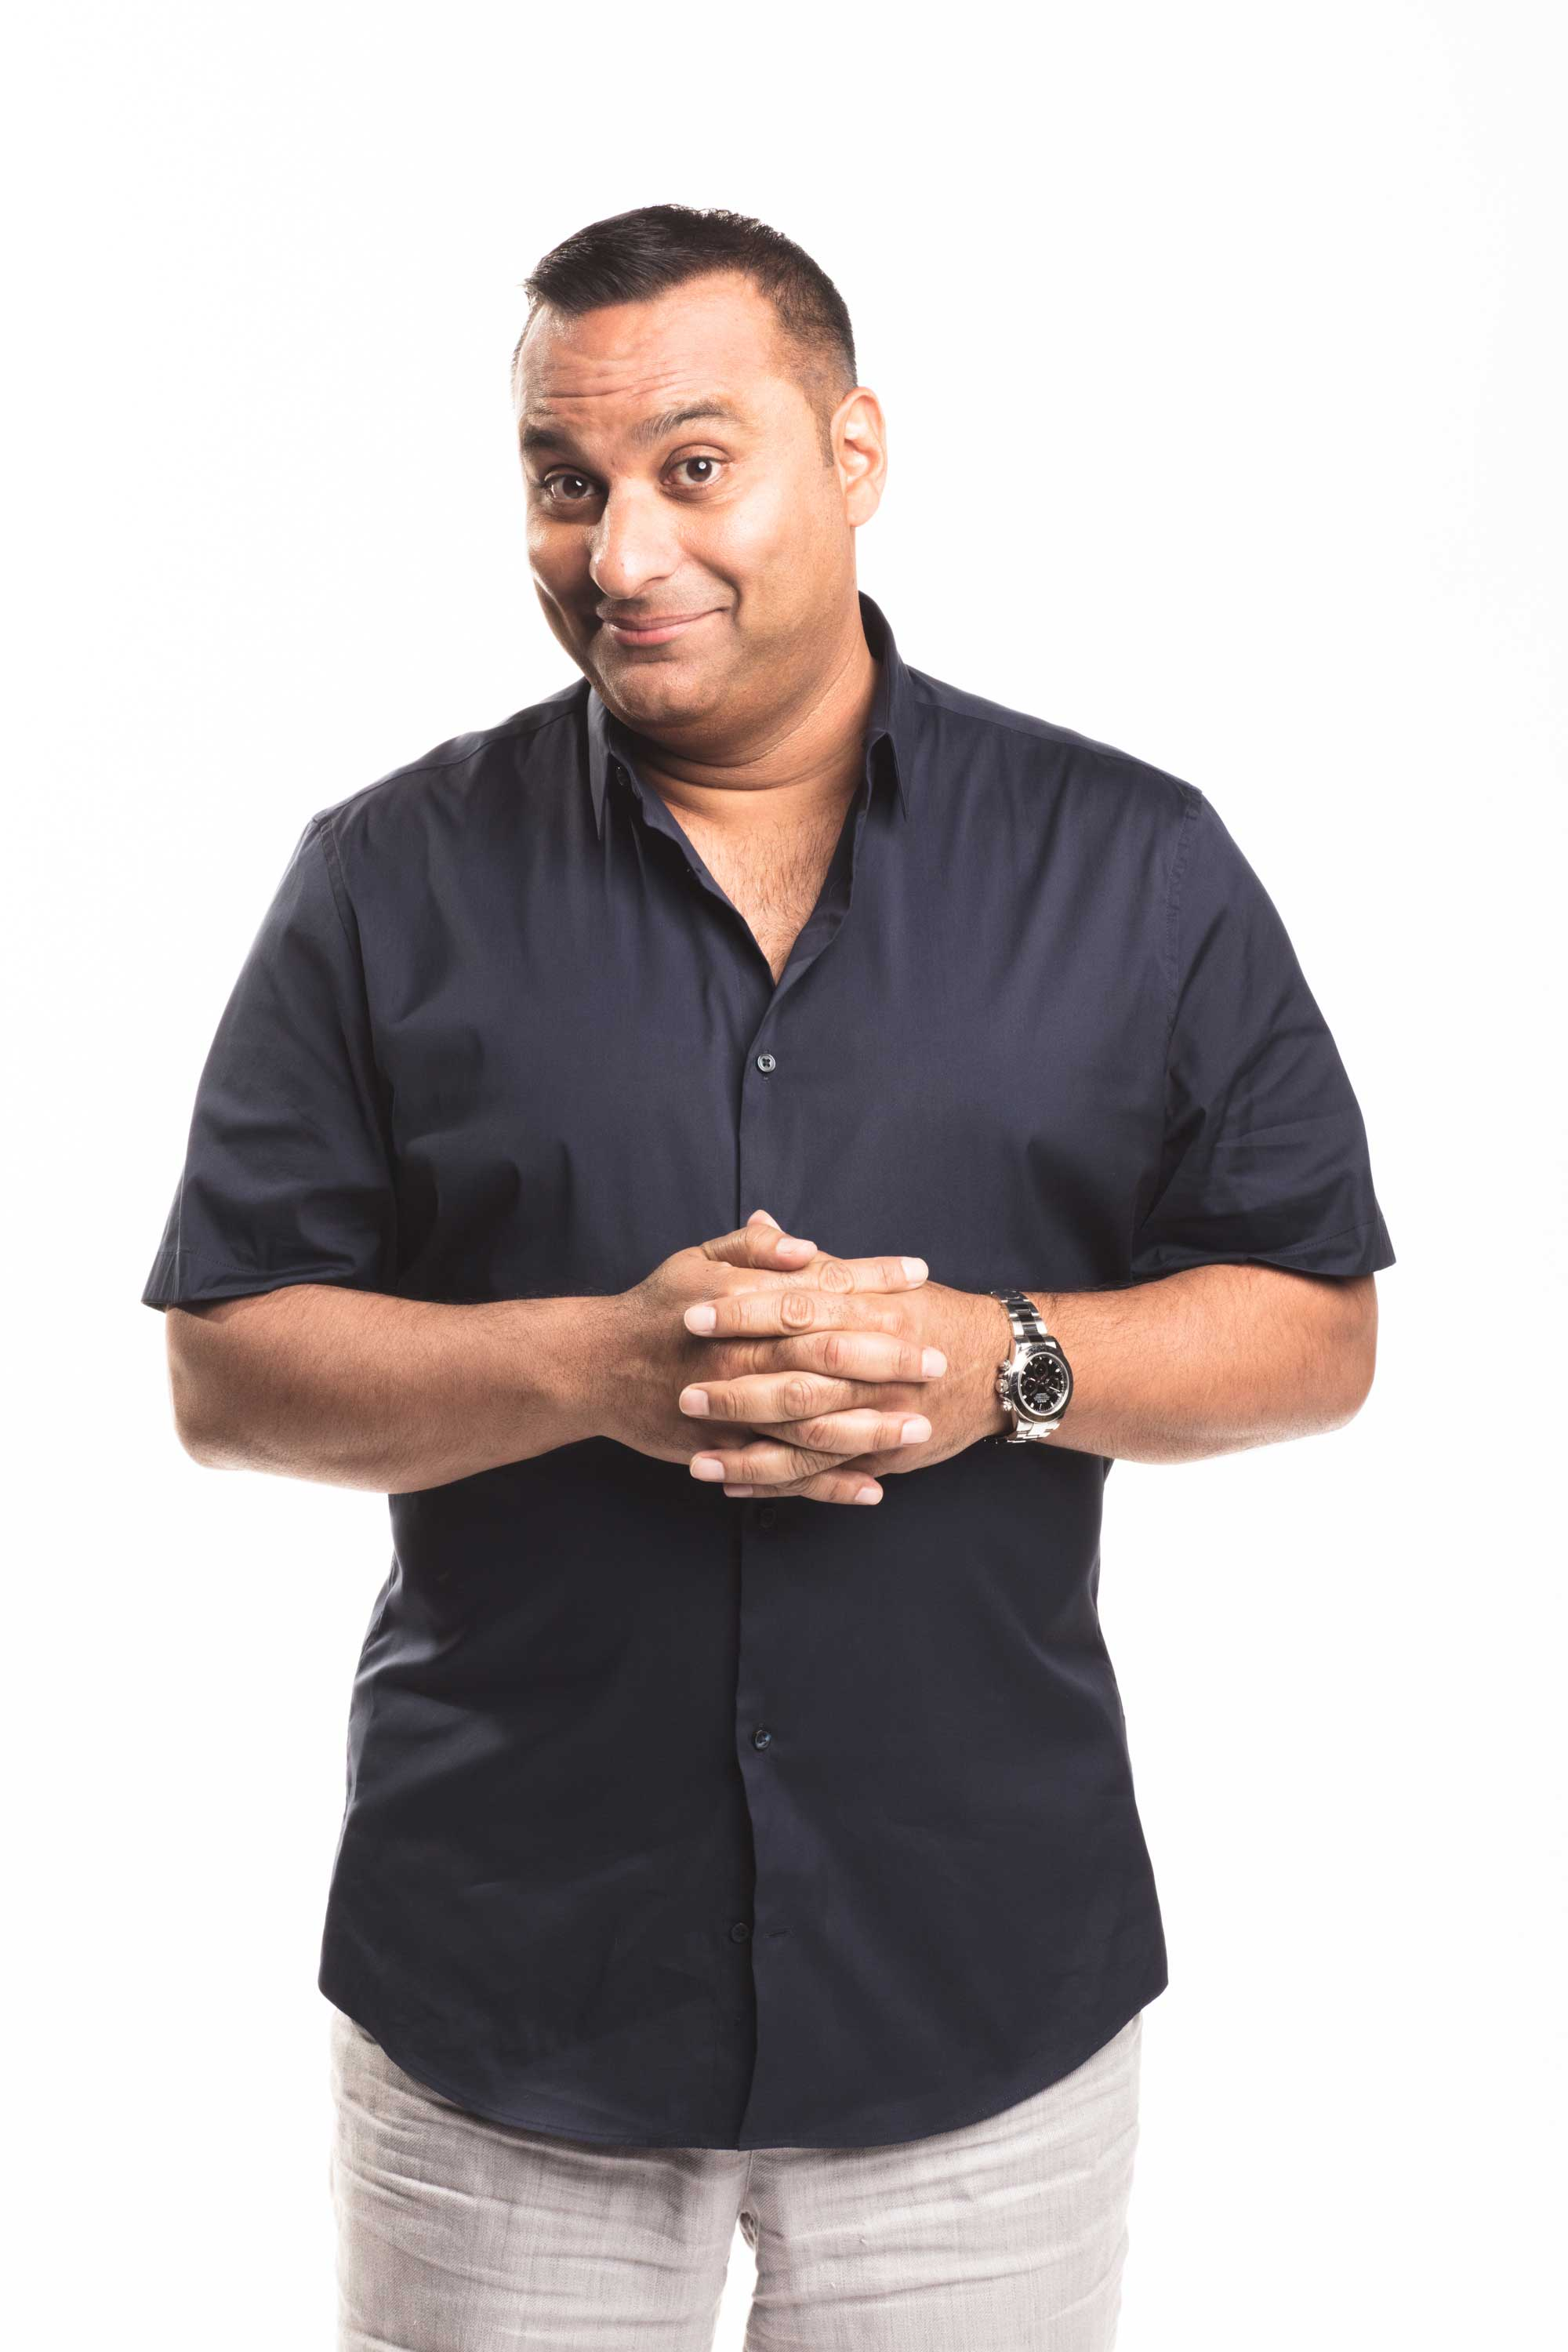 RUSSELL PETERS LIVE IN KUALA LUMPUR Slide 1